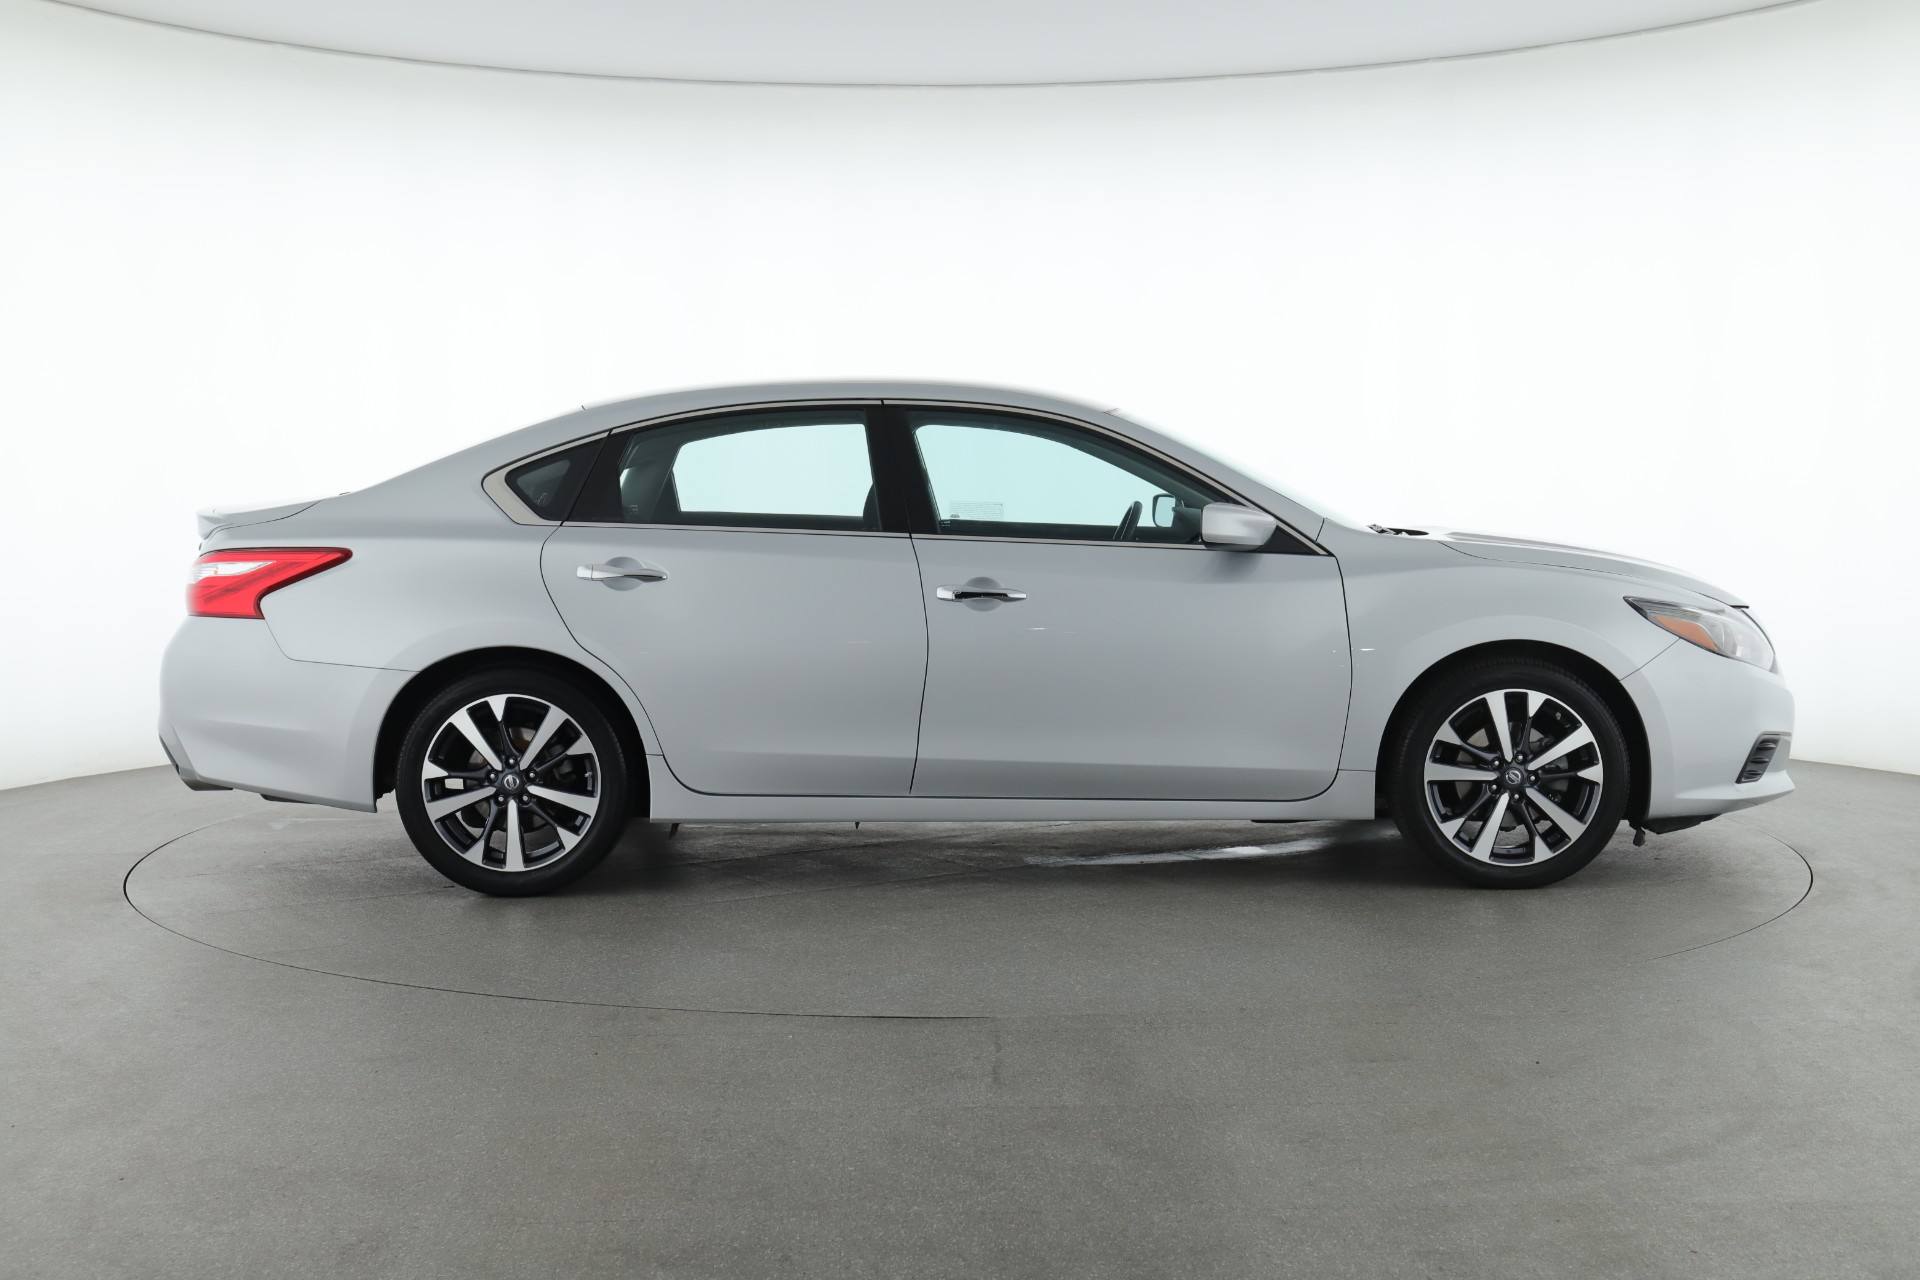 2016 Nissan Altima 2.5 SR (from $16,950)